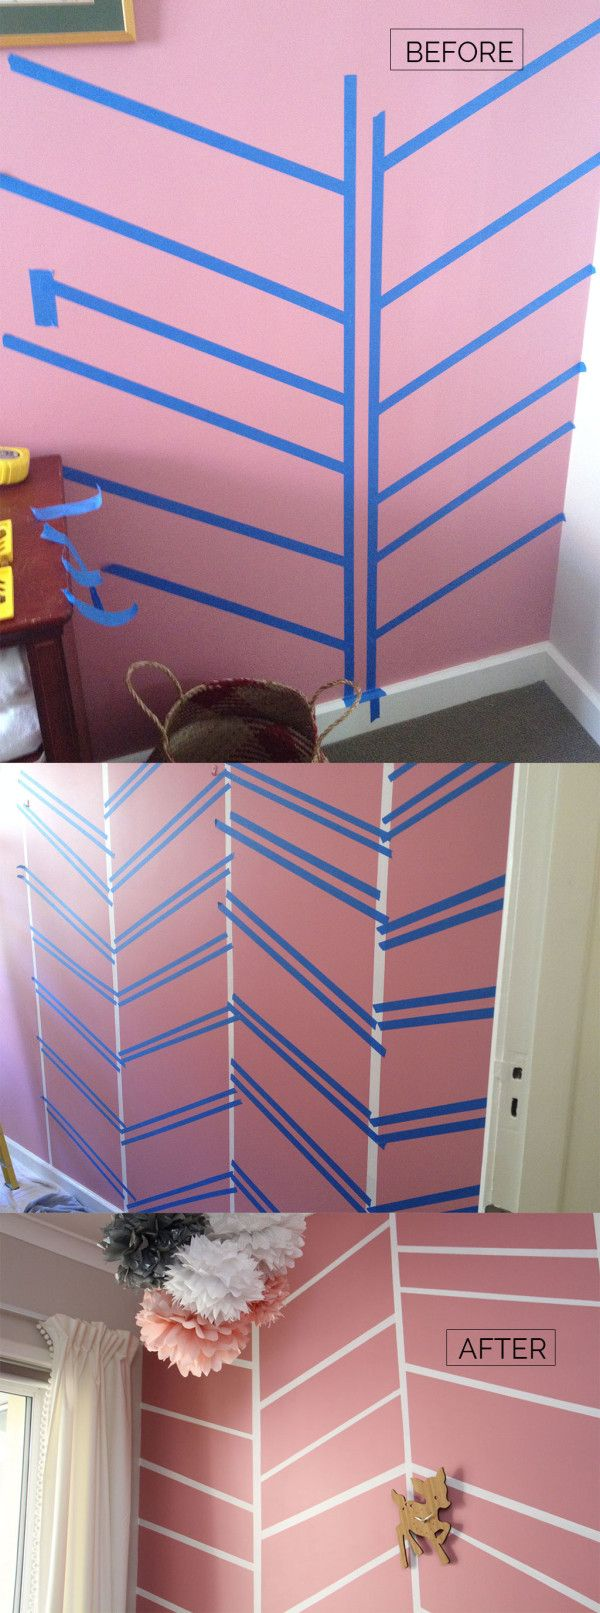 Birdie's nursery — feature wall before and after - megan nielsen design diary http://blog.megannielsen.com/2015/09/birdies-nursery/?utm_content=bufferb901f&utm_medium=social&utm_source=pinterest.com&utm_campaign=buffer